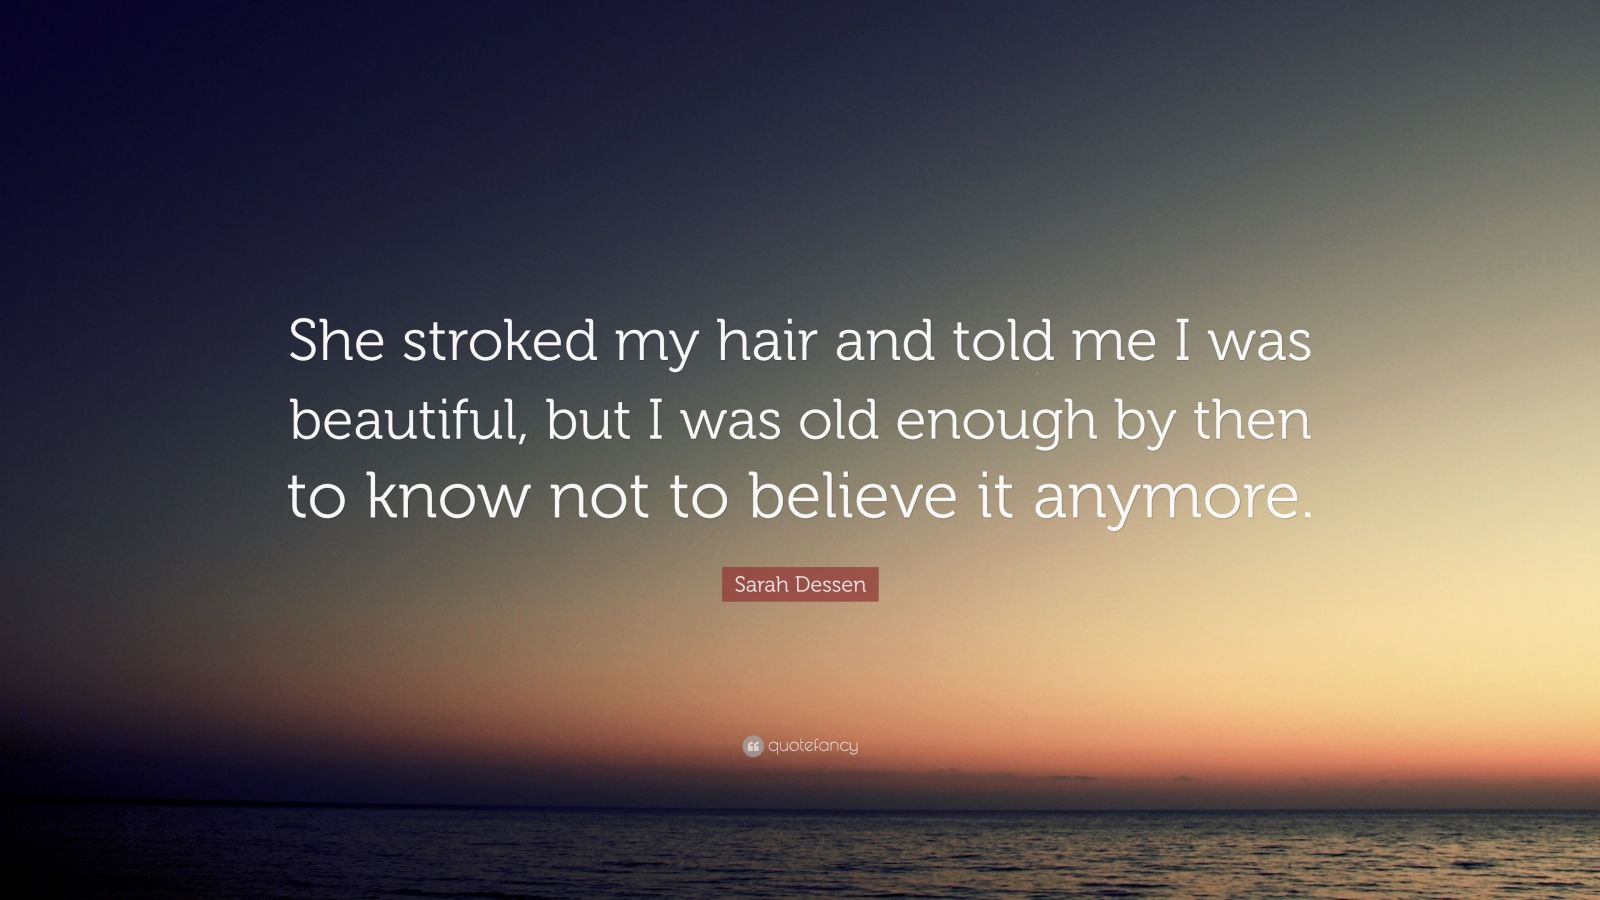 "Sarah Dessen Quote: ""She stroked my hair and told me I was beautiful, but I was old enough by then to know not to believe it anymore."""